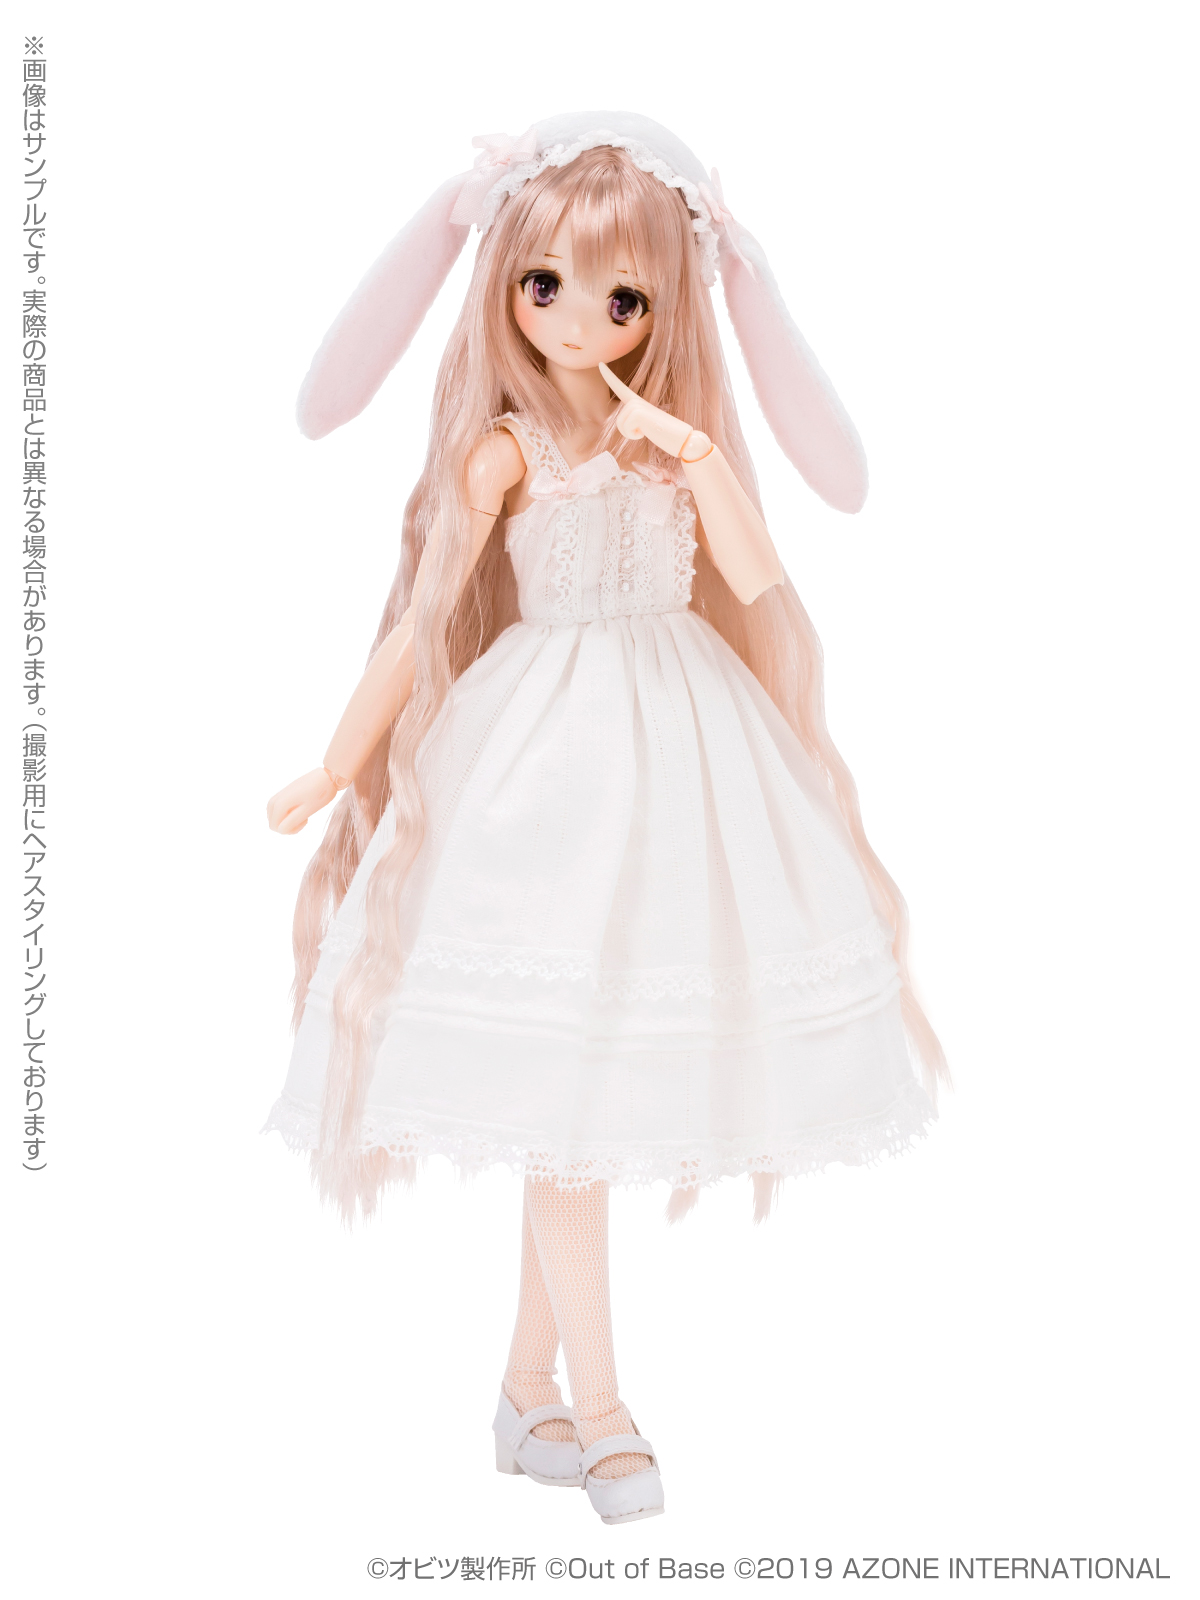 [Azone] Marshmallow Rabbit - Owase School Uniform Project Yuri Uemura - Obitsu exhibition holding commemorative model Aod01915